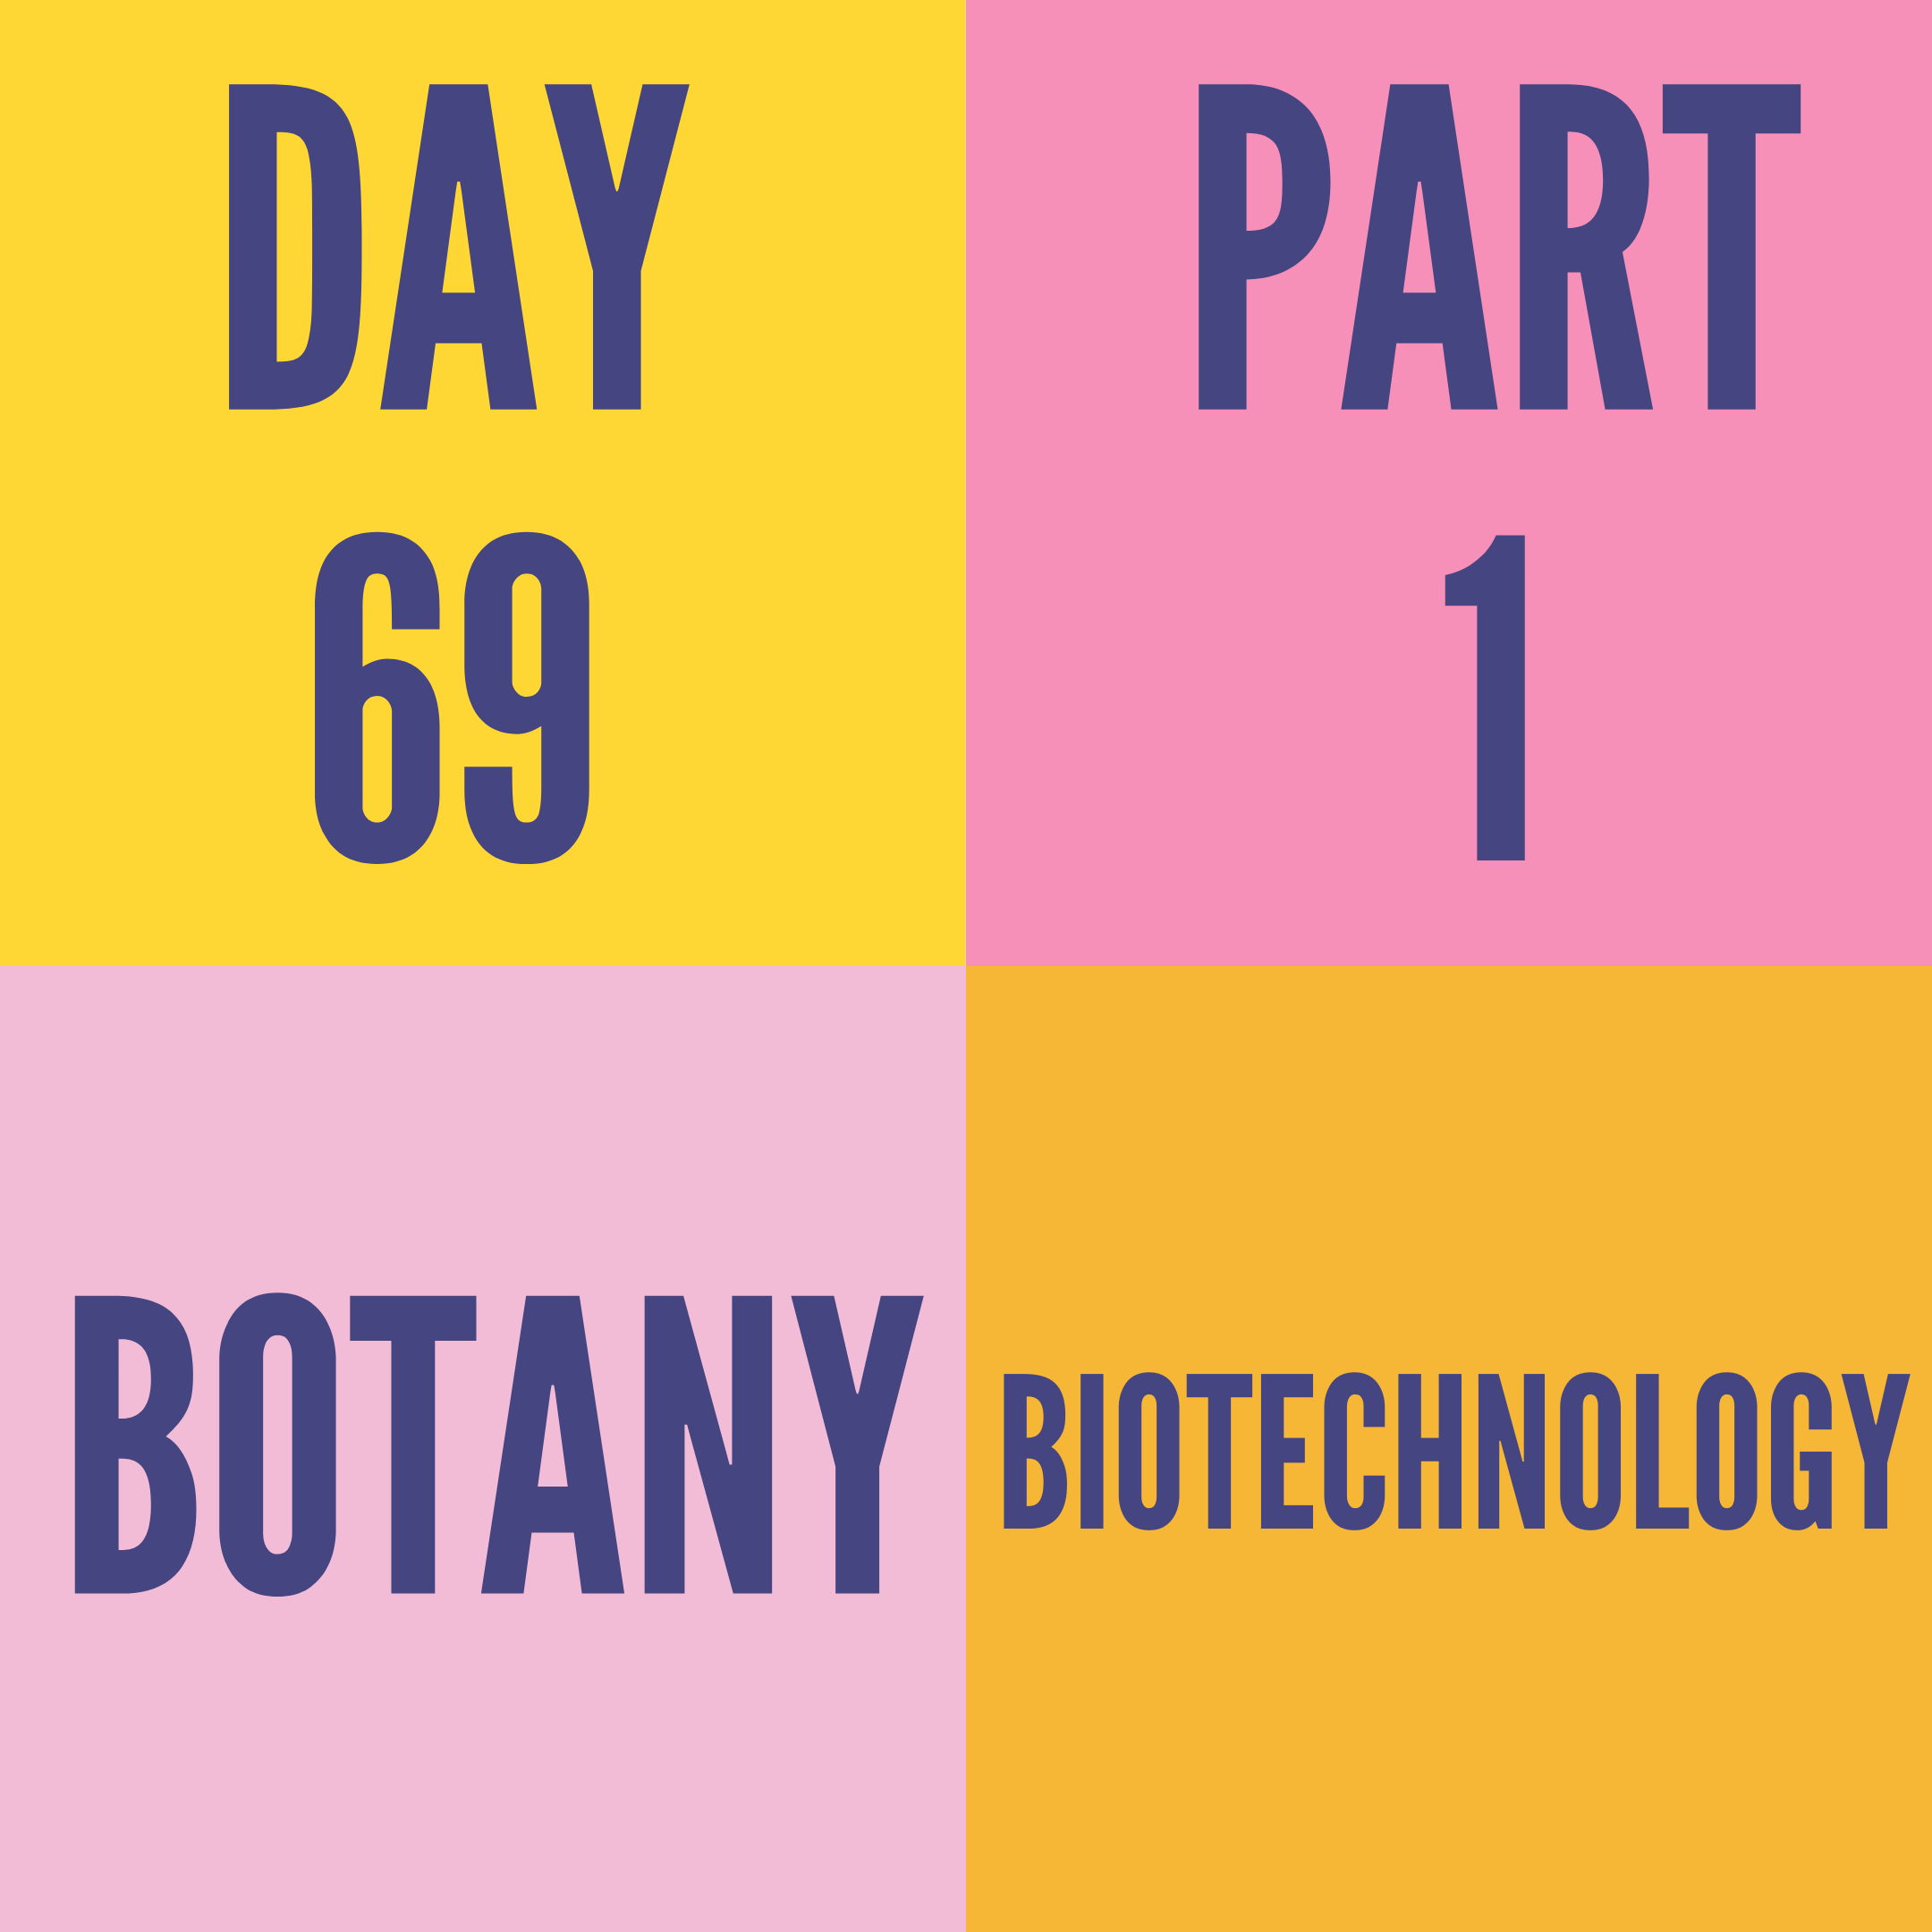 DAY-69 PART-1 BIOTECHNOLOGY